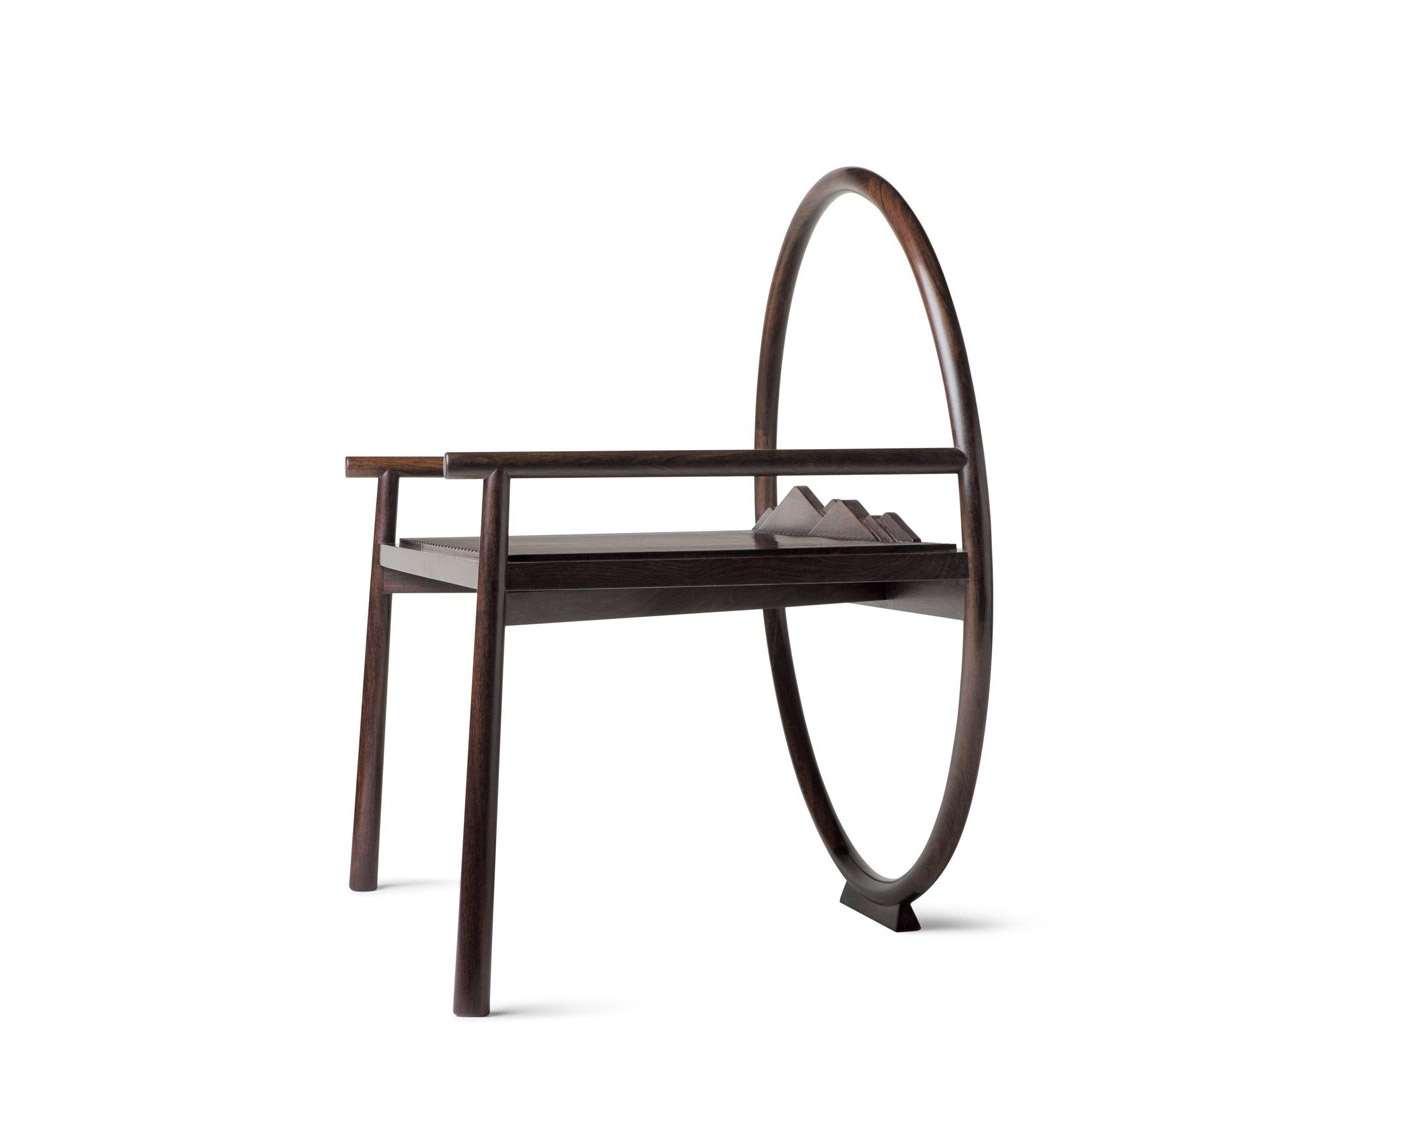 Remarkable Hong Wei Abstract Furniture Forms Derived From The Chinese Andrewgaddart Wooden Chair Designs For Living Room Andrewgaddartcom